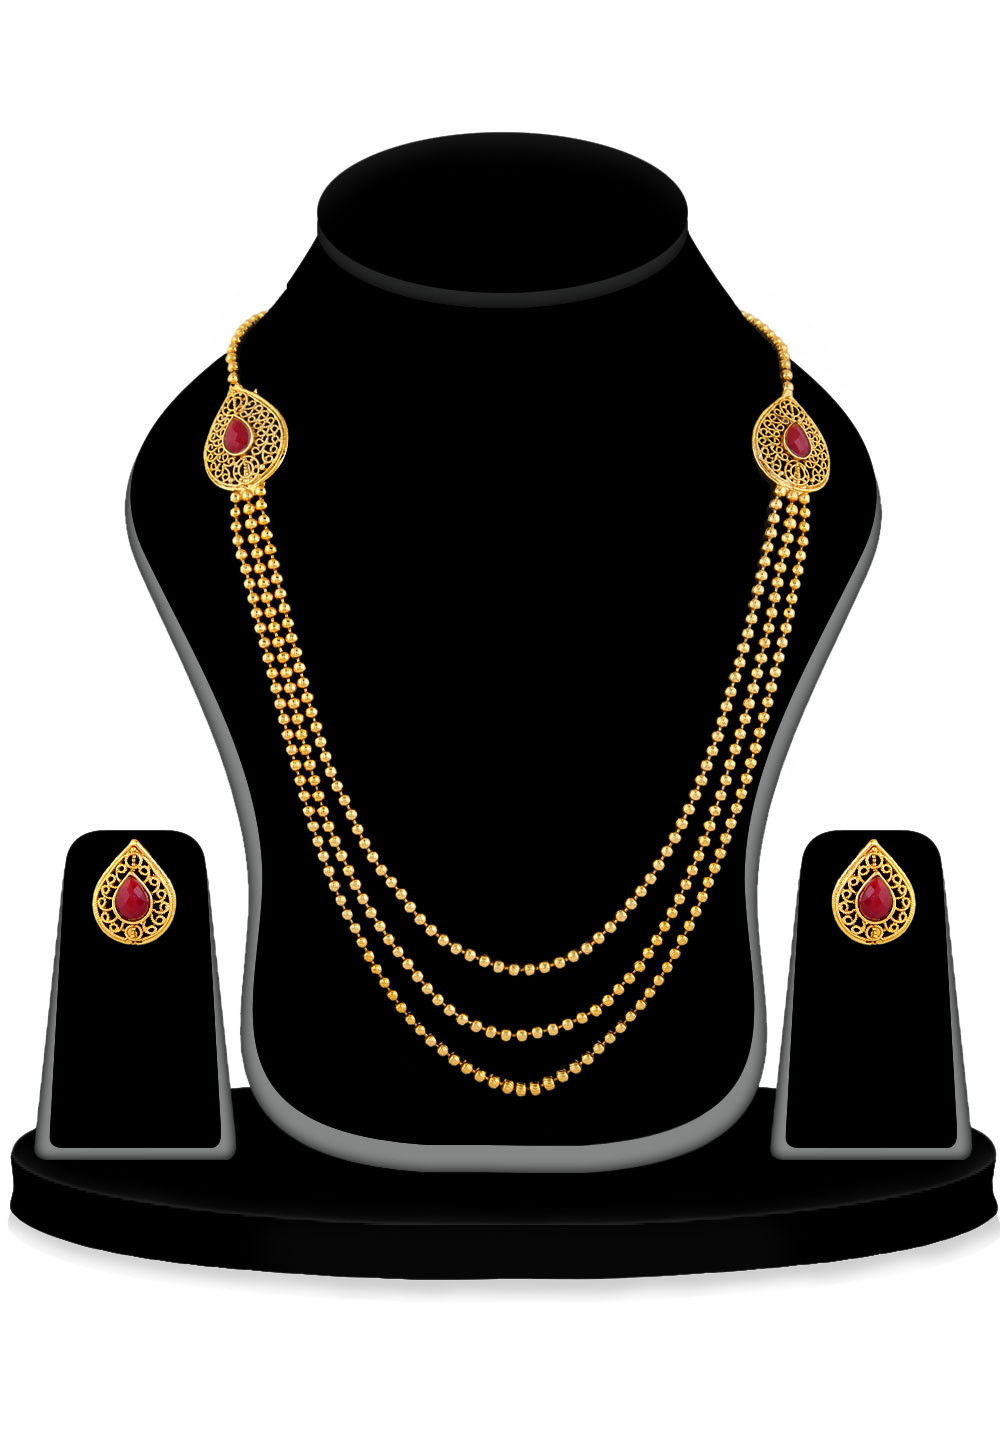 Stone Studded Long Necklace Set in Golden and Red